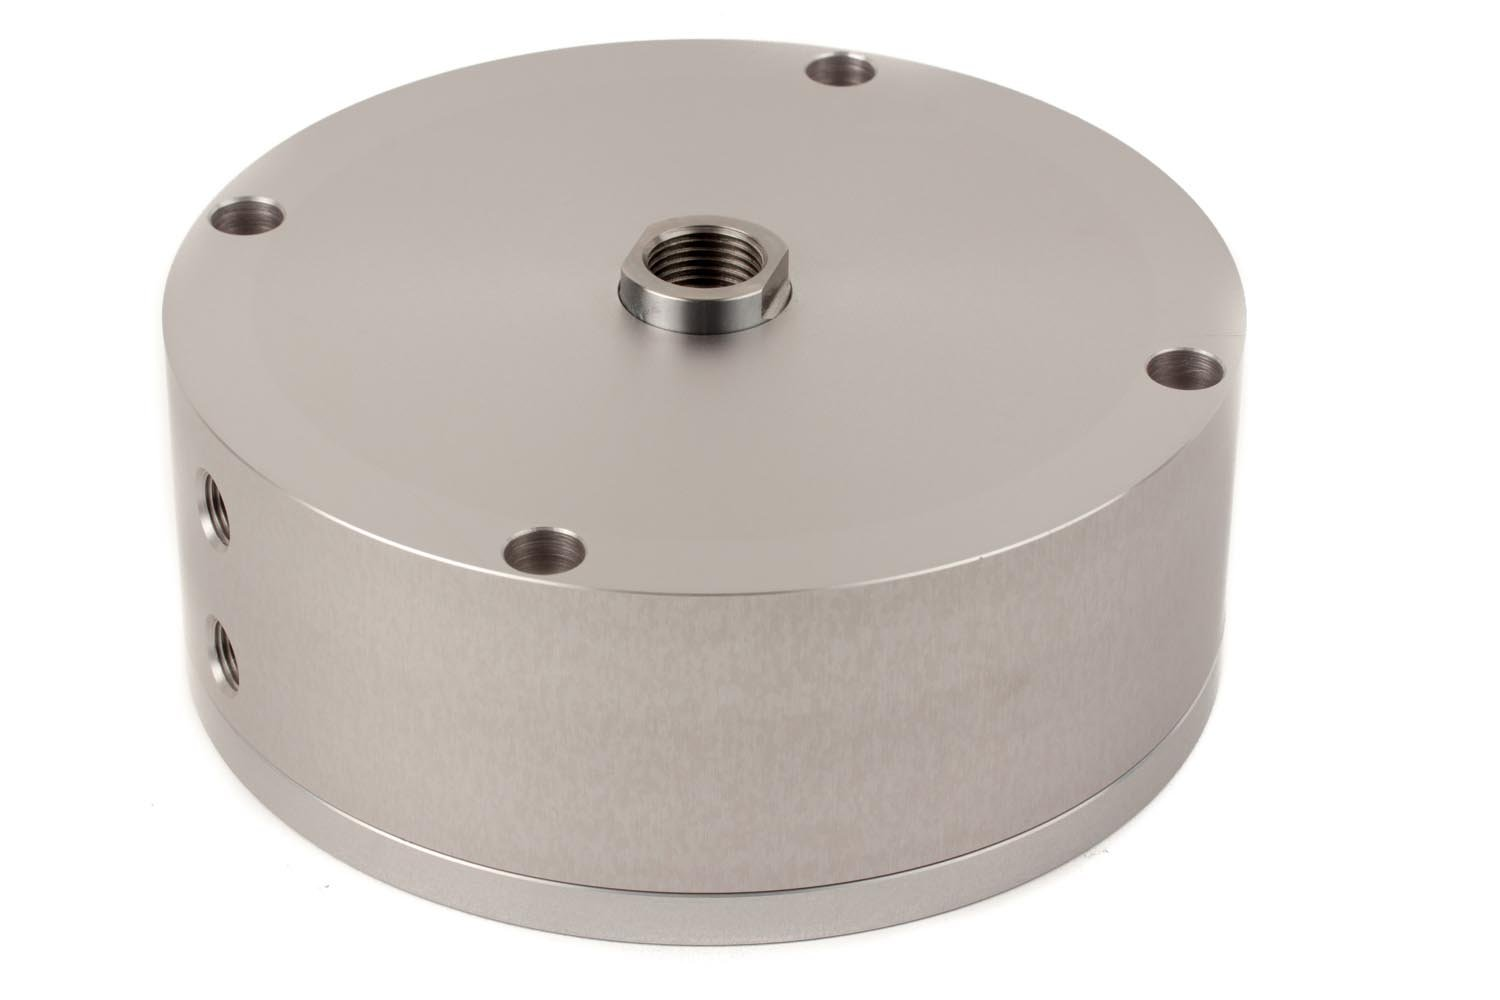 "Fabco-Air AA-1221-X Original Pancake Cylinder, Double Acting, Maximum Pressure of 250 PSI, 4"" Bore Diameter x 1/2"" Stroke"